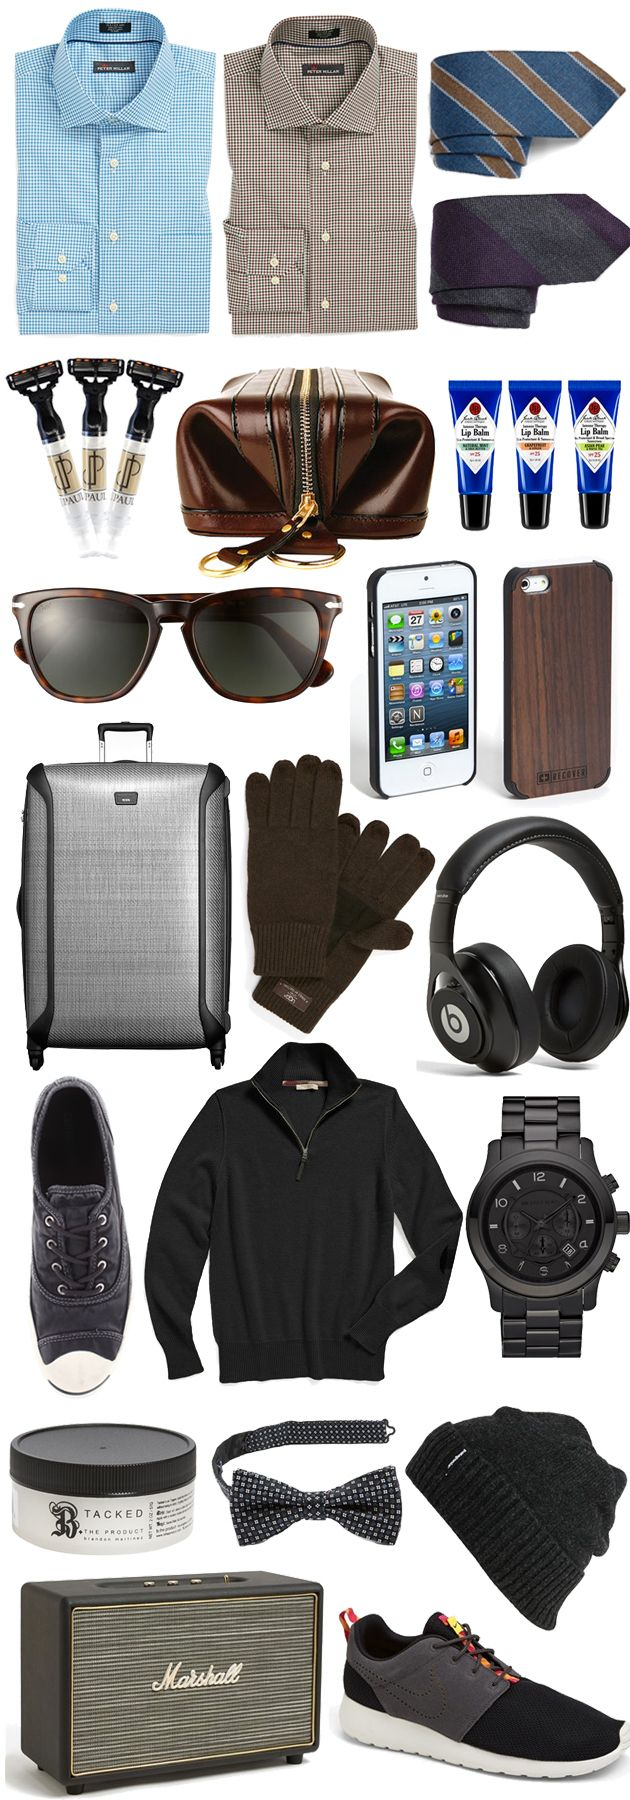 best gift guide for him images on pinterest gift guide gift